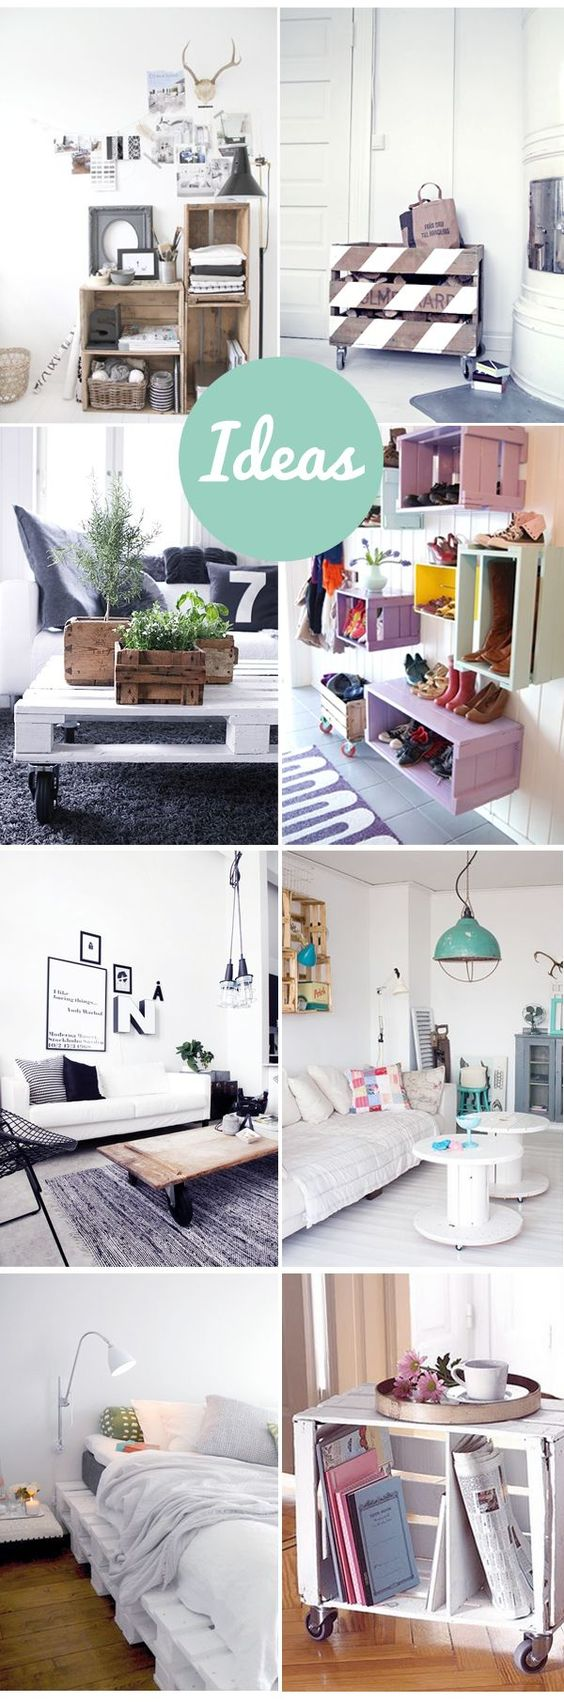 Deco on Pinterest